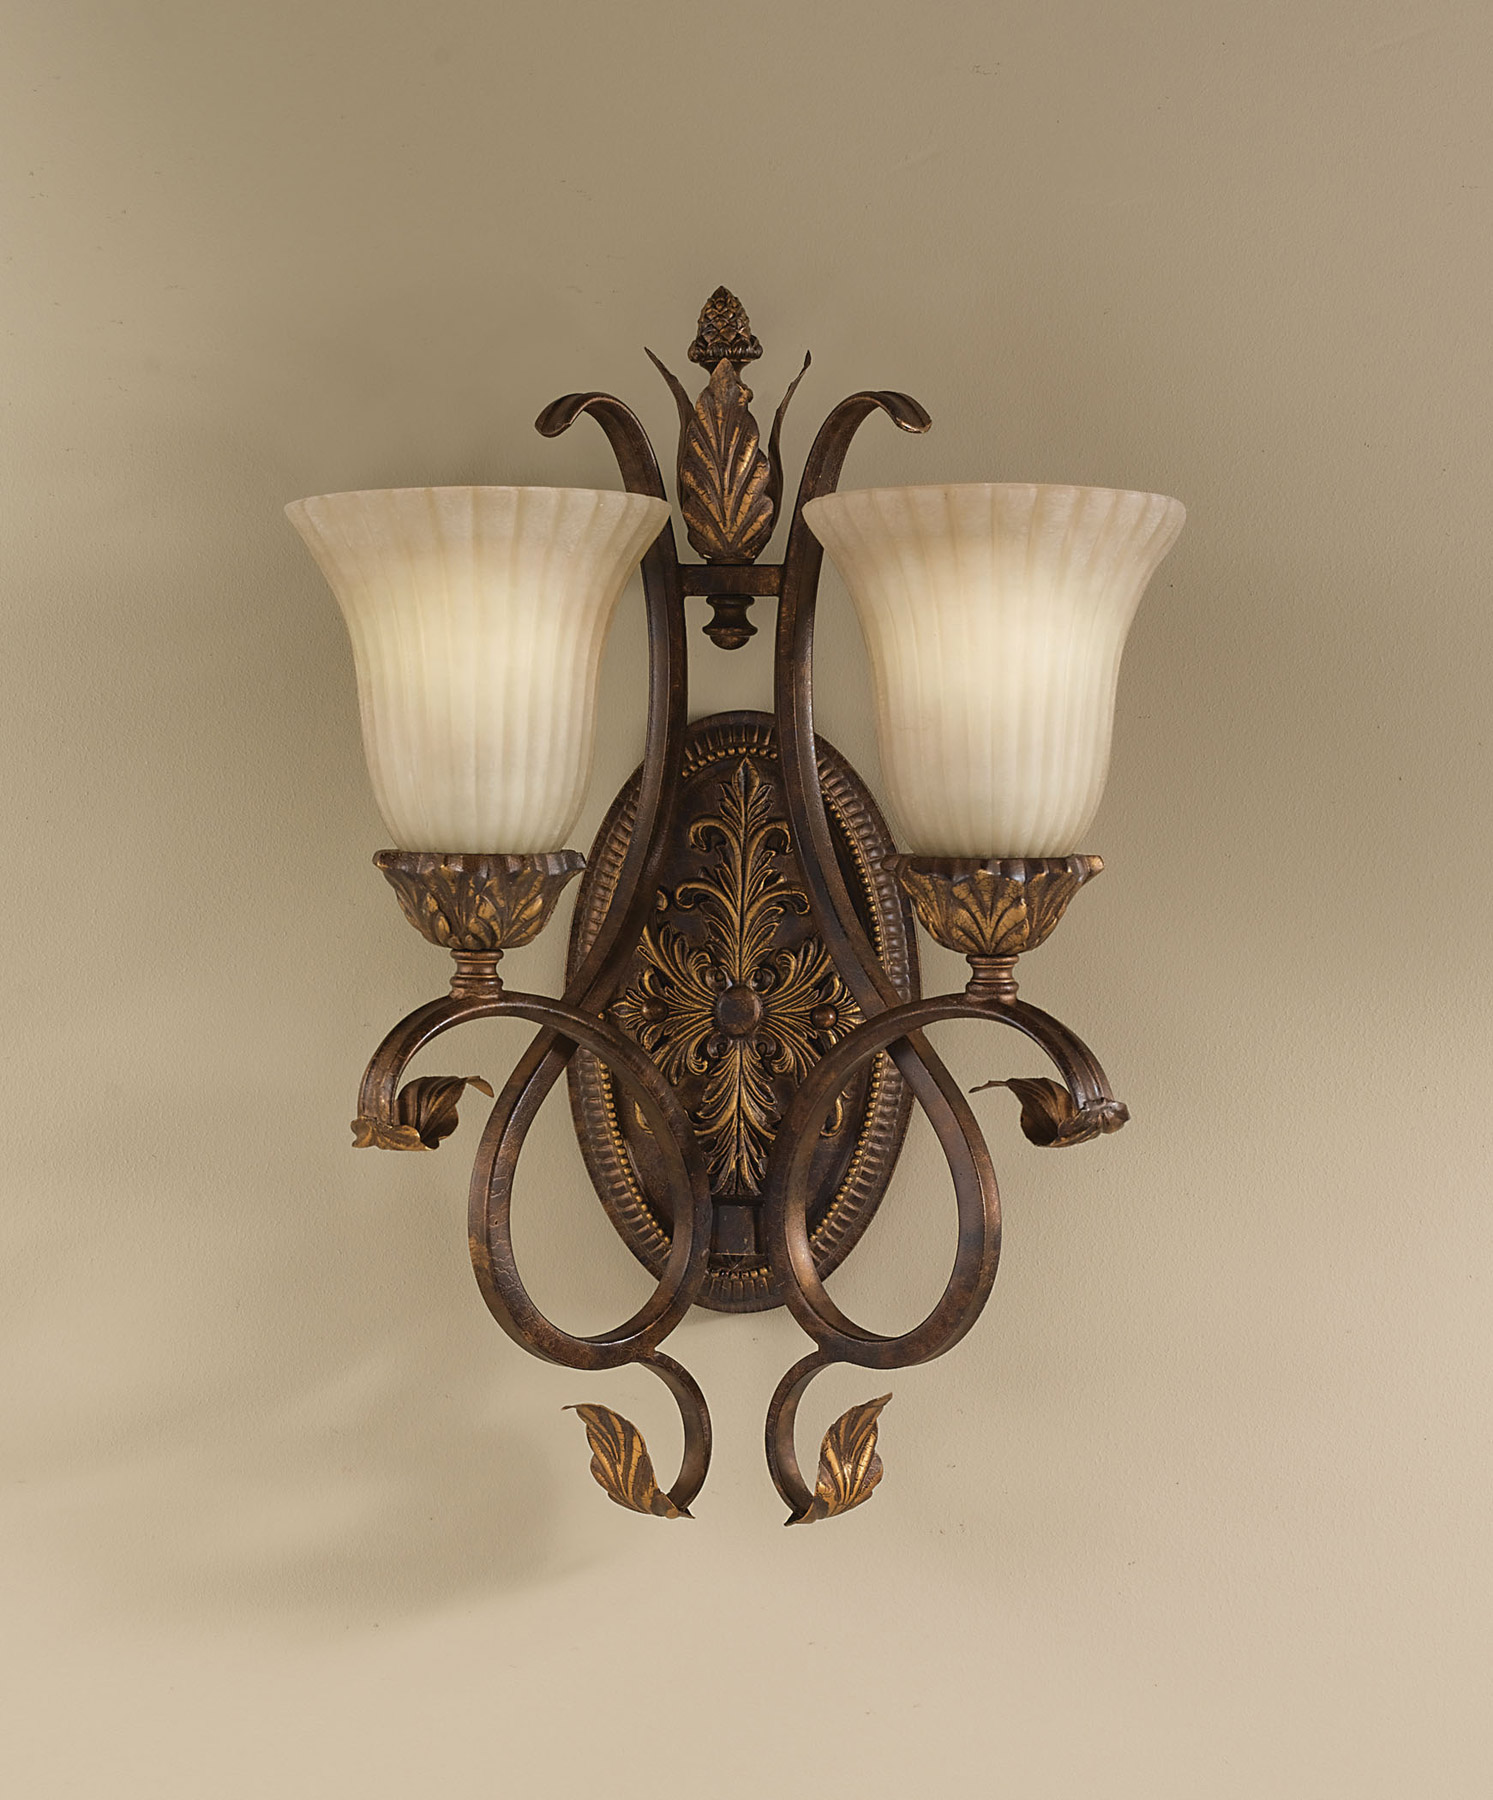 Murray Feiss Wall Sconces: Murray Feiss WB1281ATS Sonoma Valley Wall Sconce